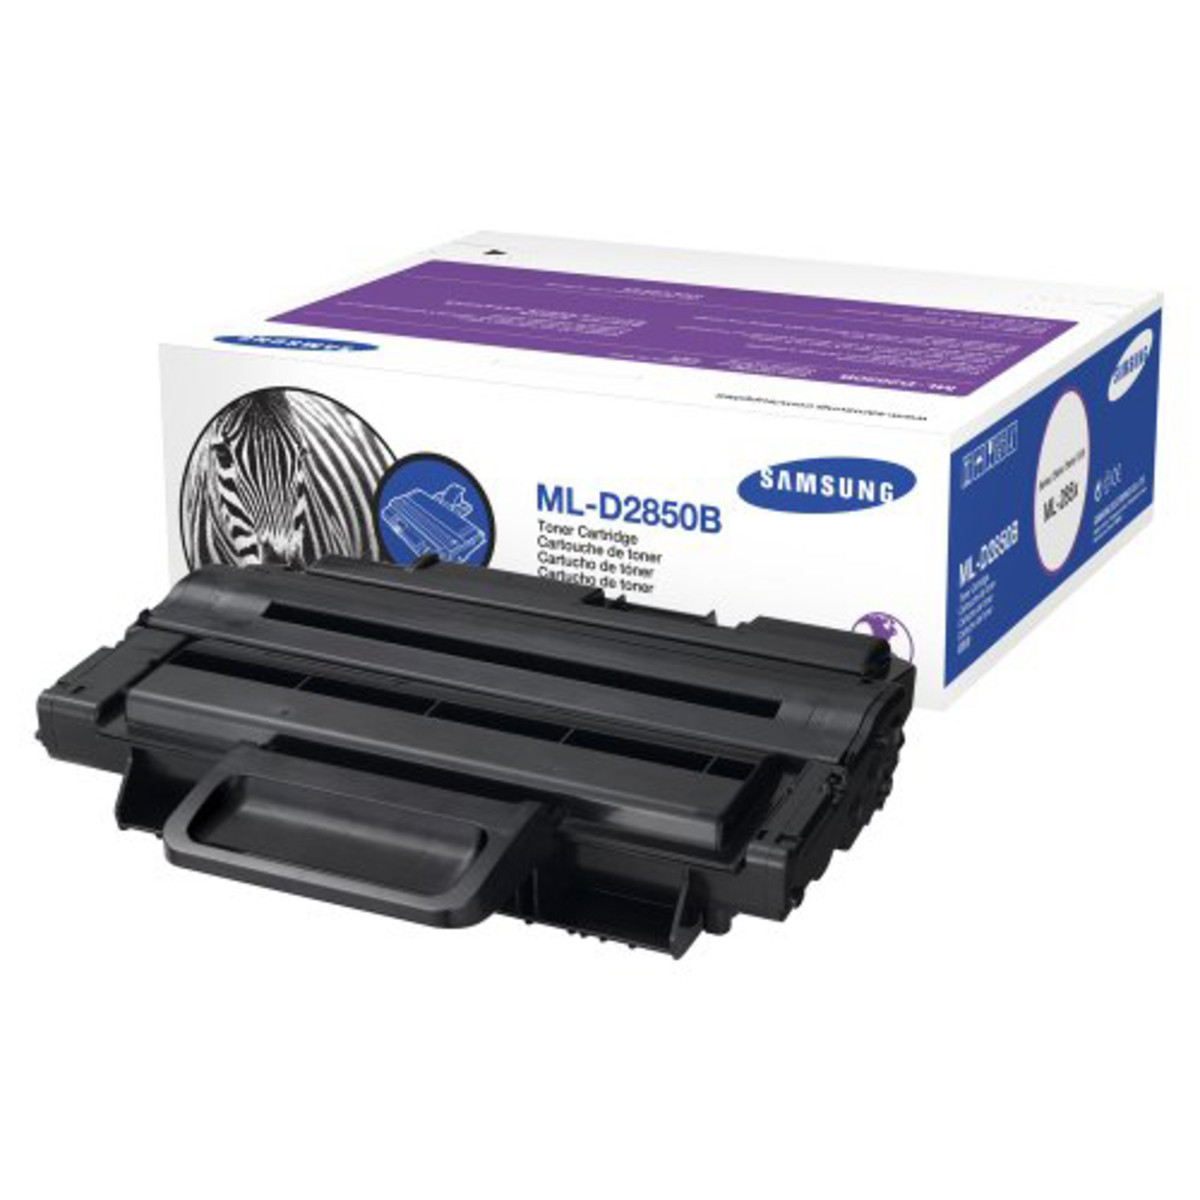 Samsung ML-D2850B Black Toner Cartridge